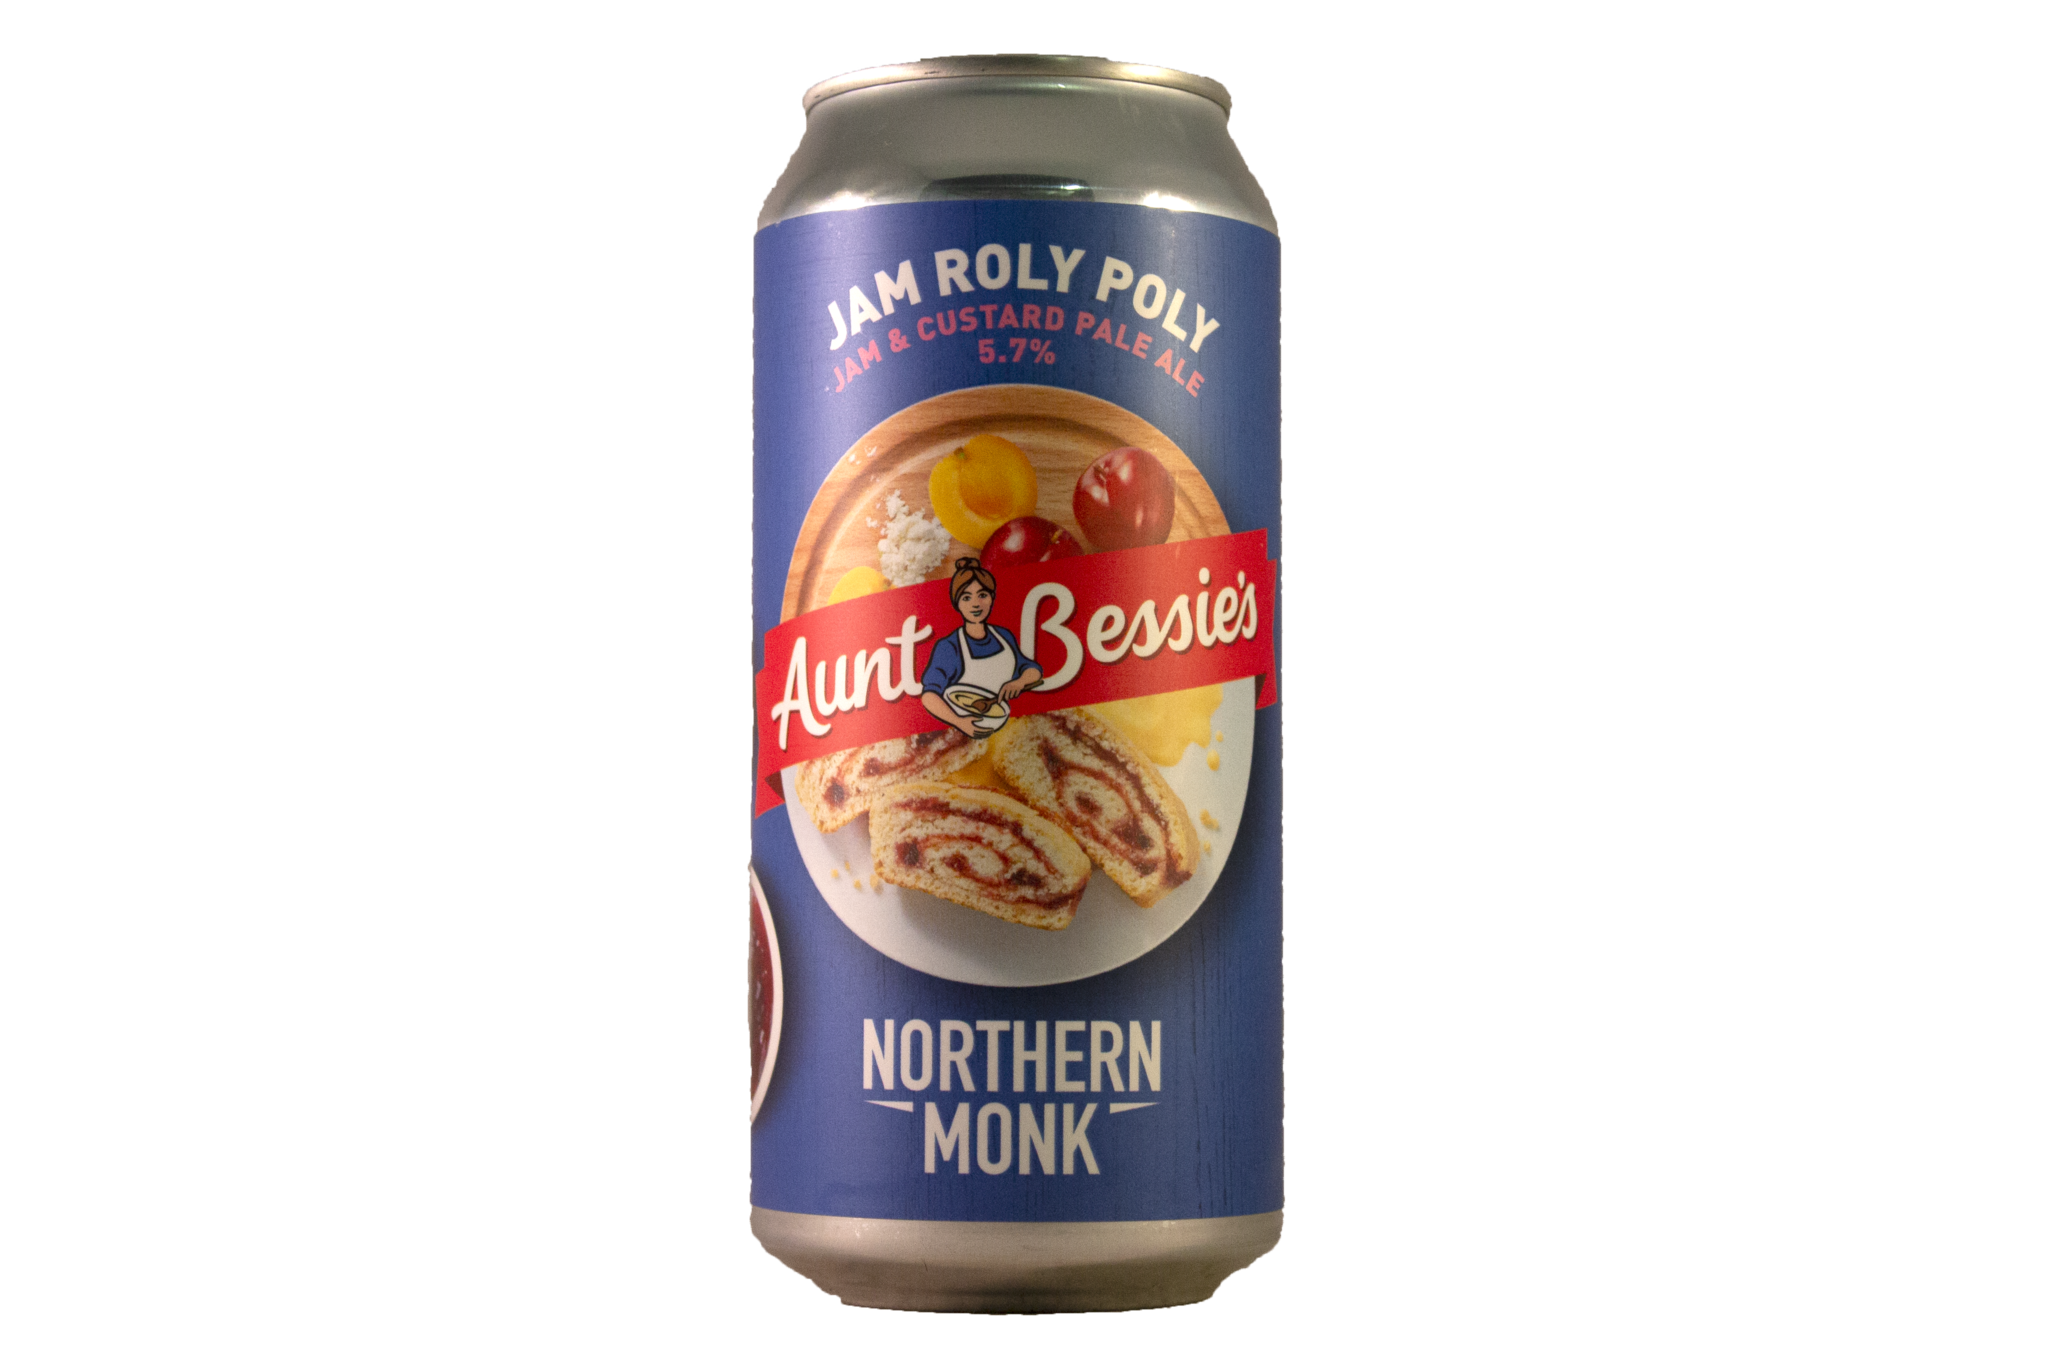 NORTHERN MONK JAM ROLY POLY